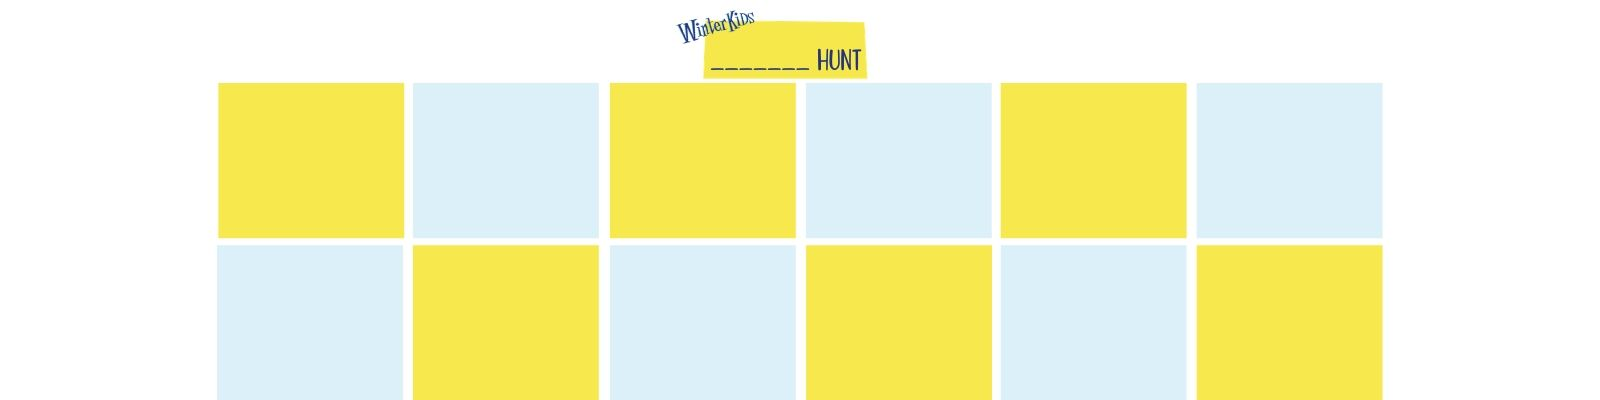 Create Your Own Nature Hunt